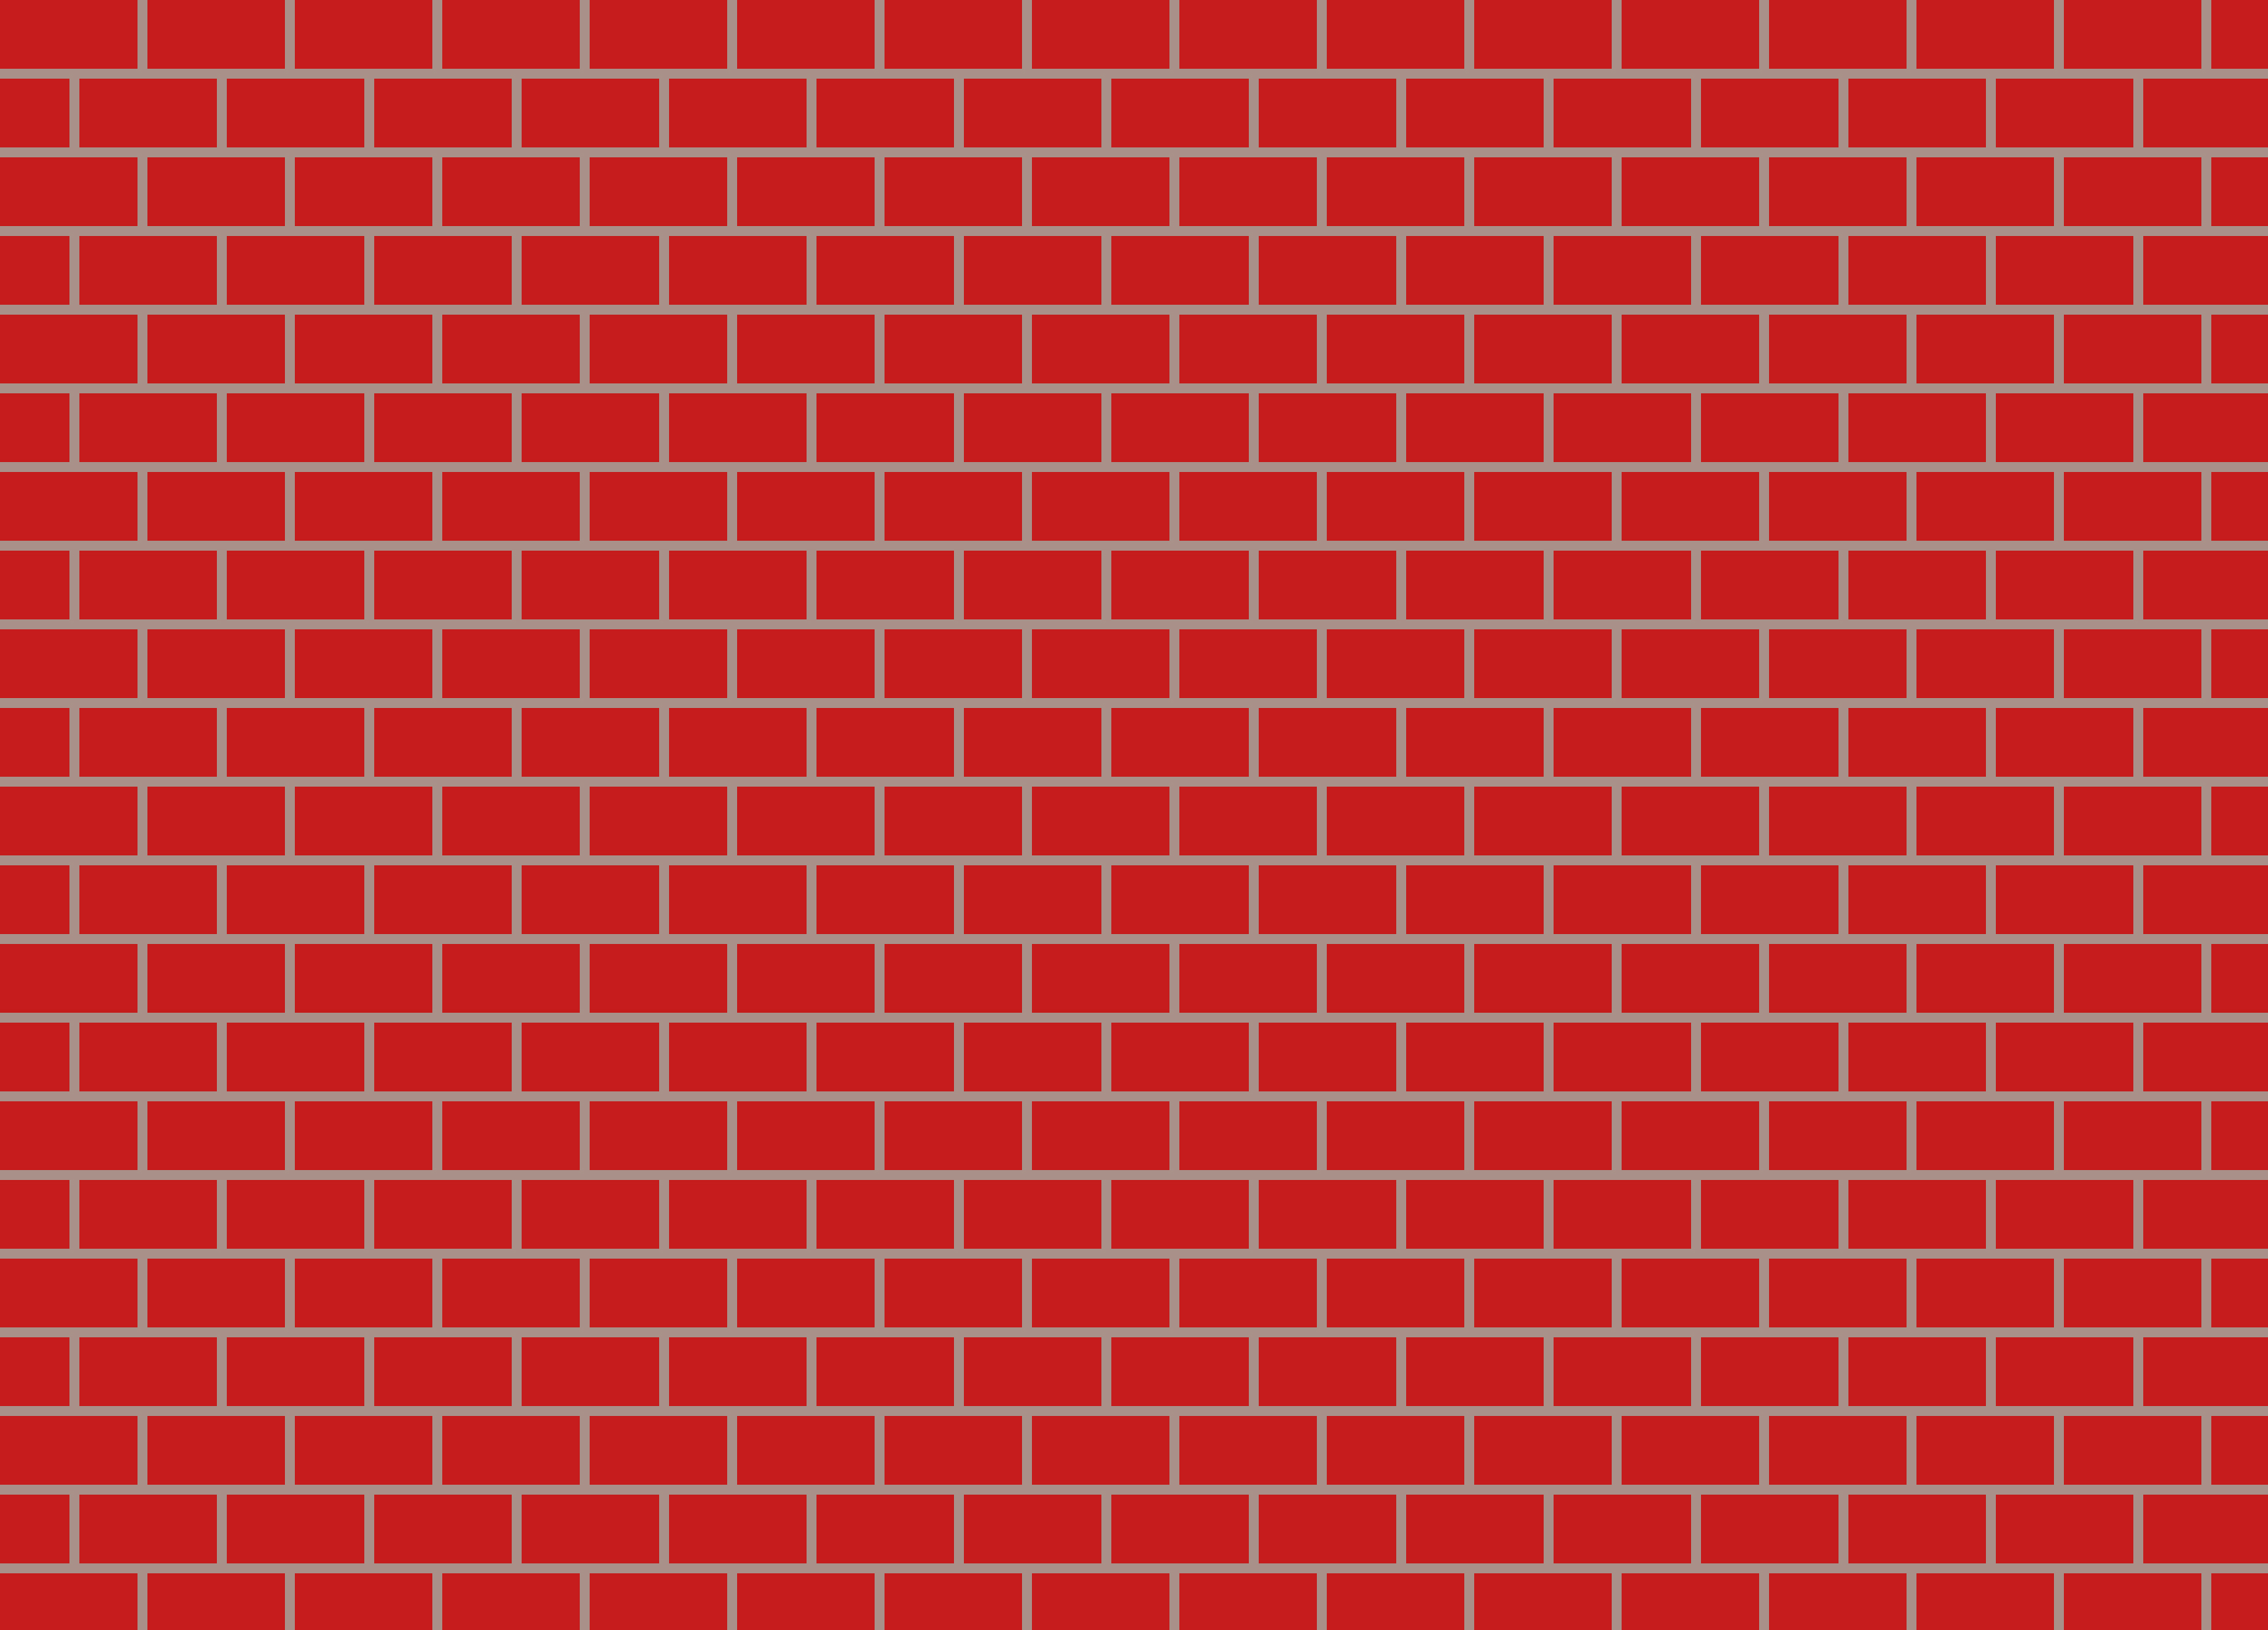 clipart library download Free cliparts download clip. Clipart brick wall